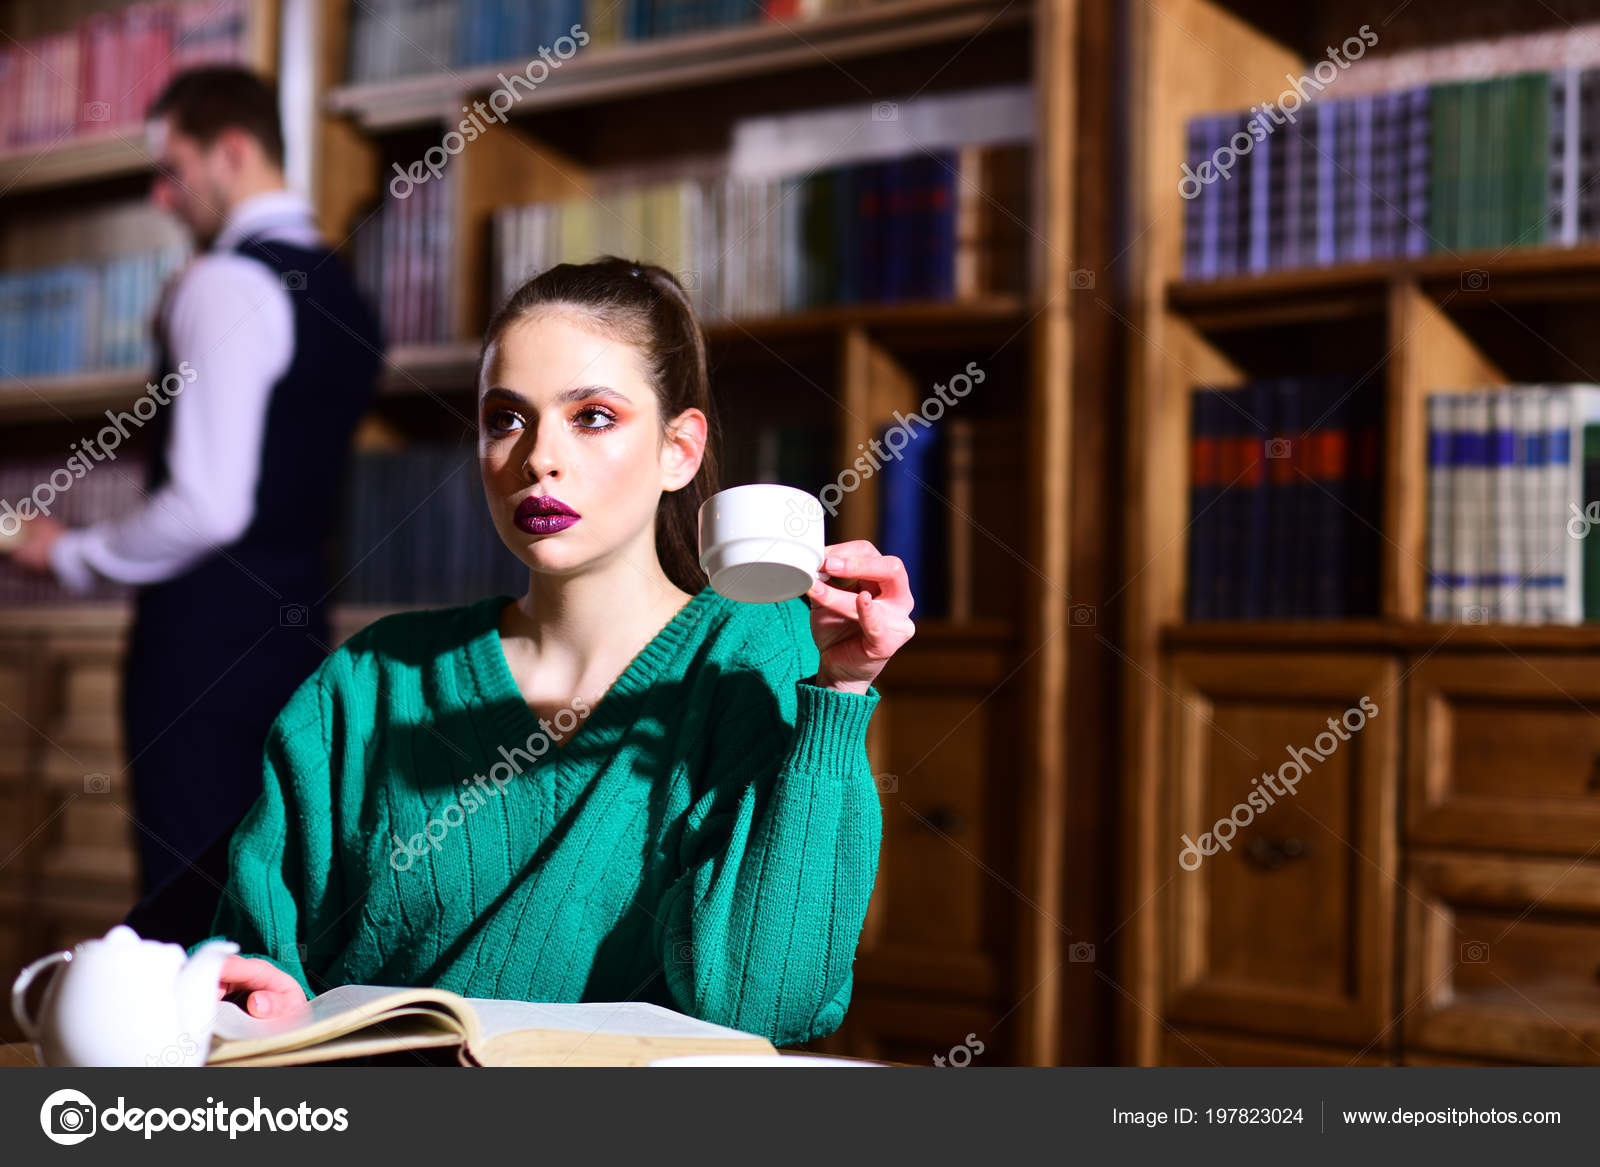 Student Life University Woman Library Read Book Teapot Drinking